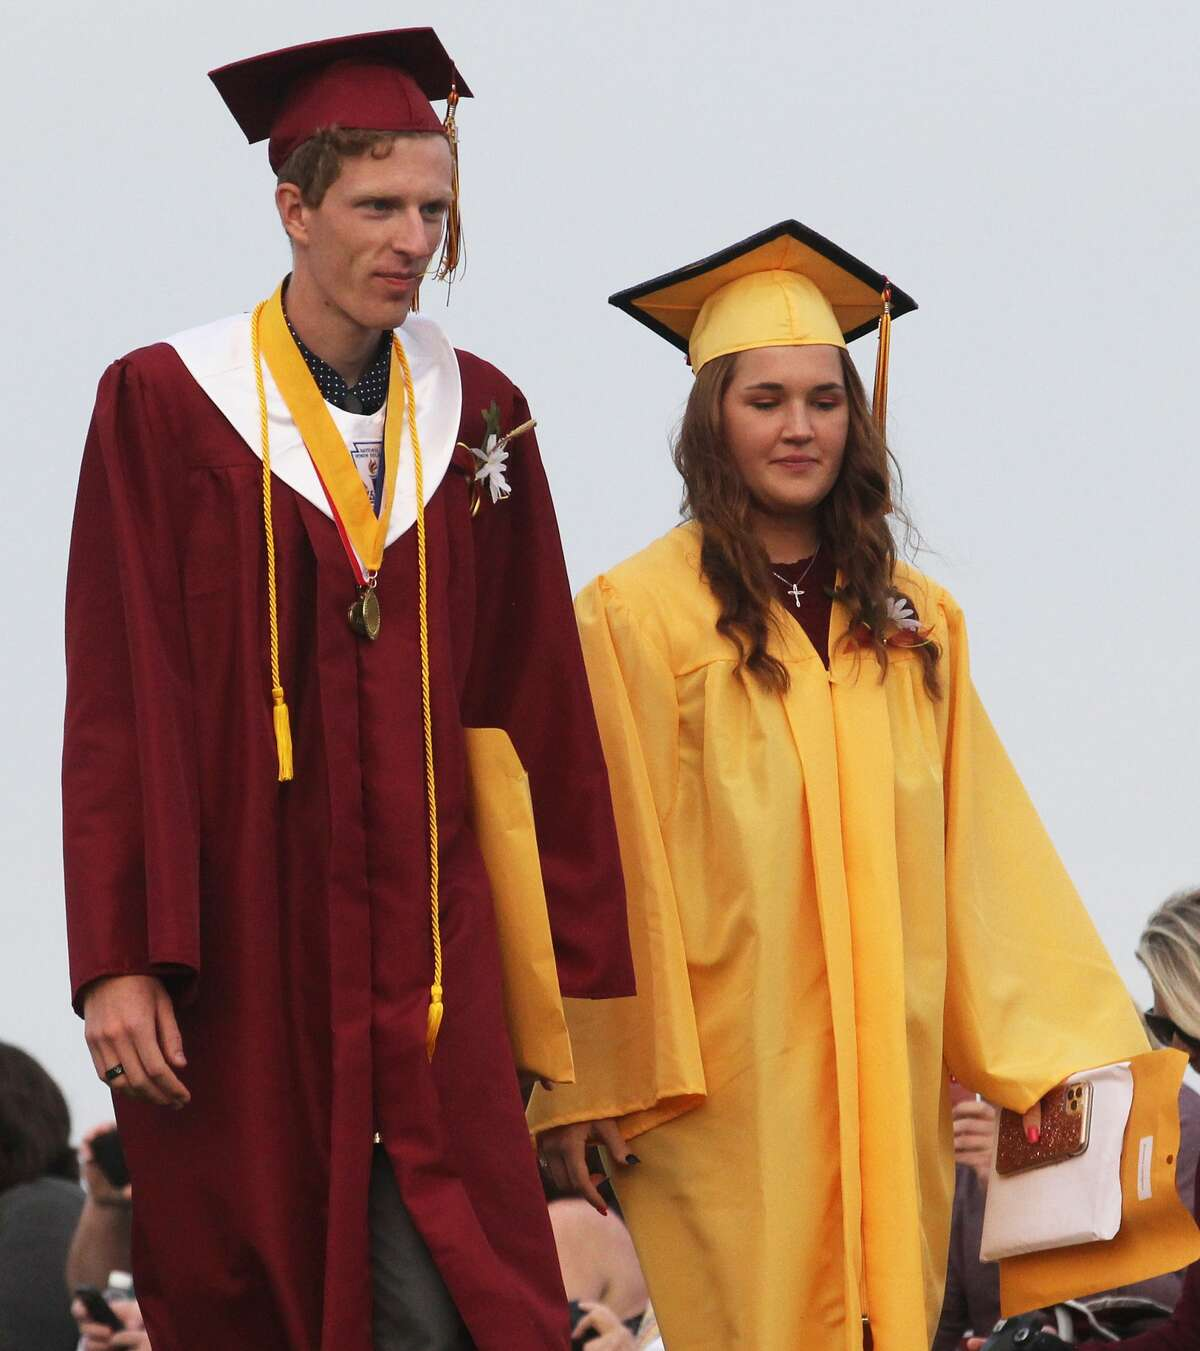 Deckerville High School held its 2021 commencement ceremony on Friday evening. The event included speeches by co-valedictorians Brett Dumaw and Olivia Terbrack and salutatorian Kaylyn Kappen.